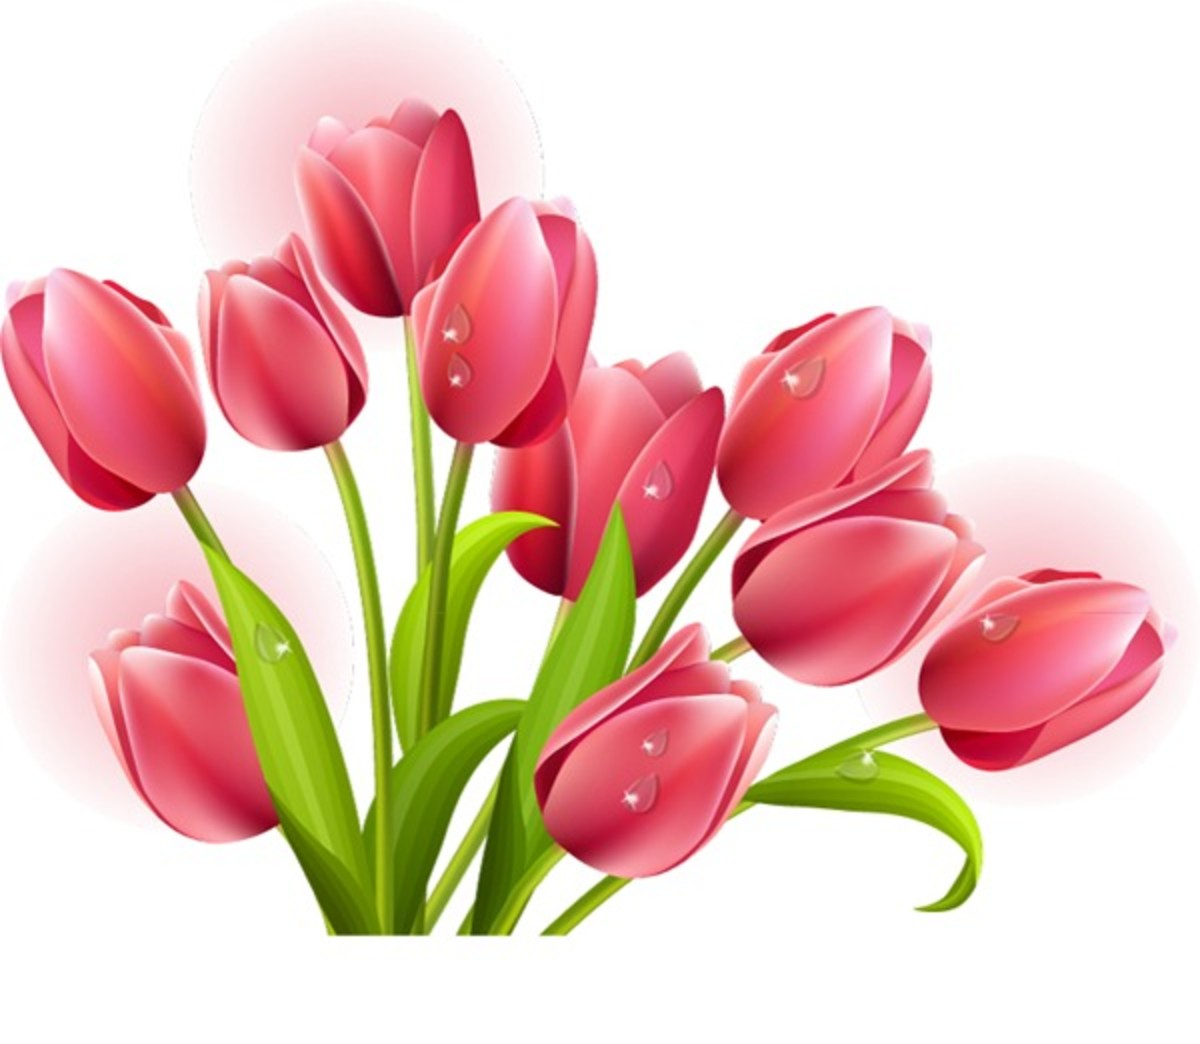 Cluster of Pink Tulips